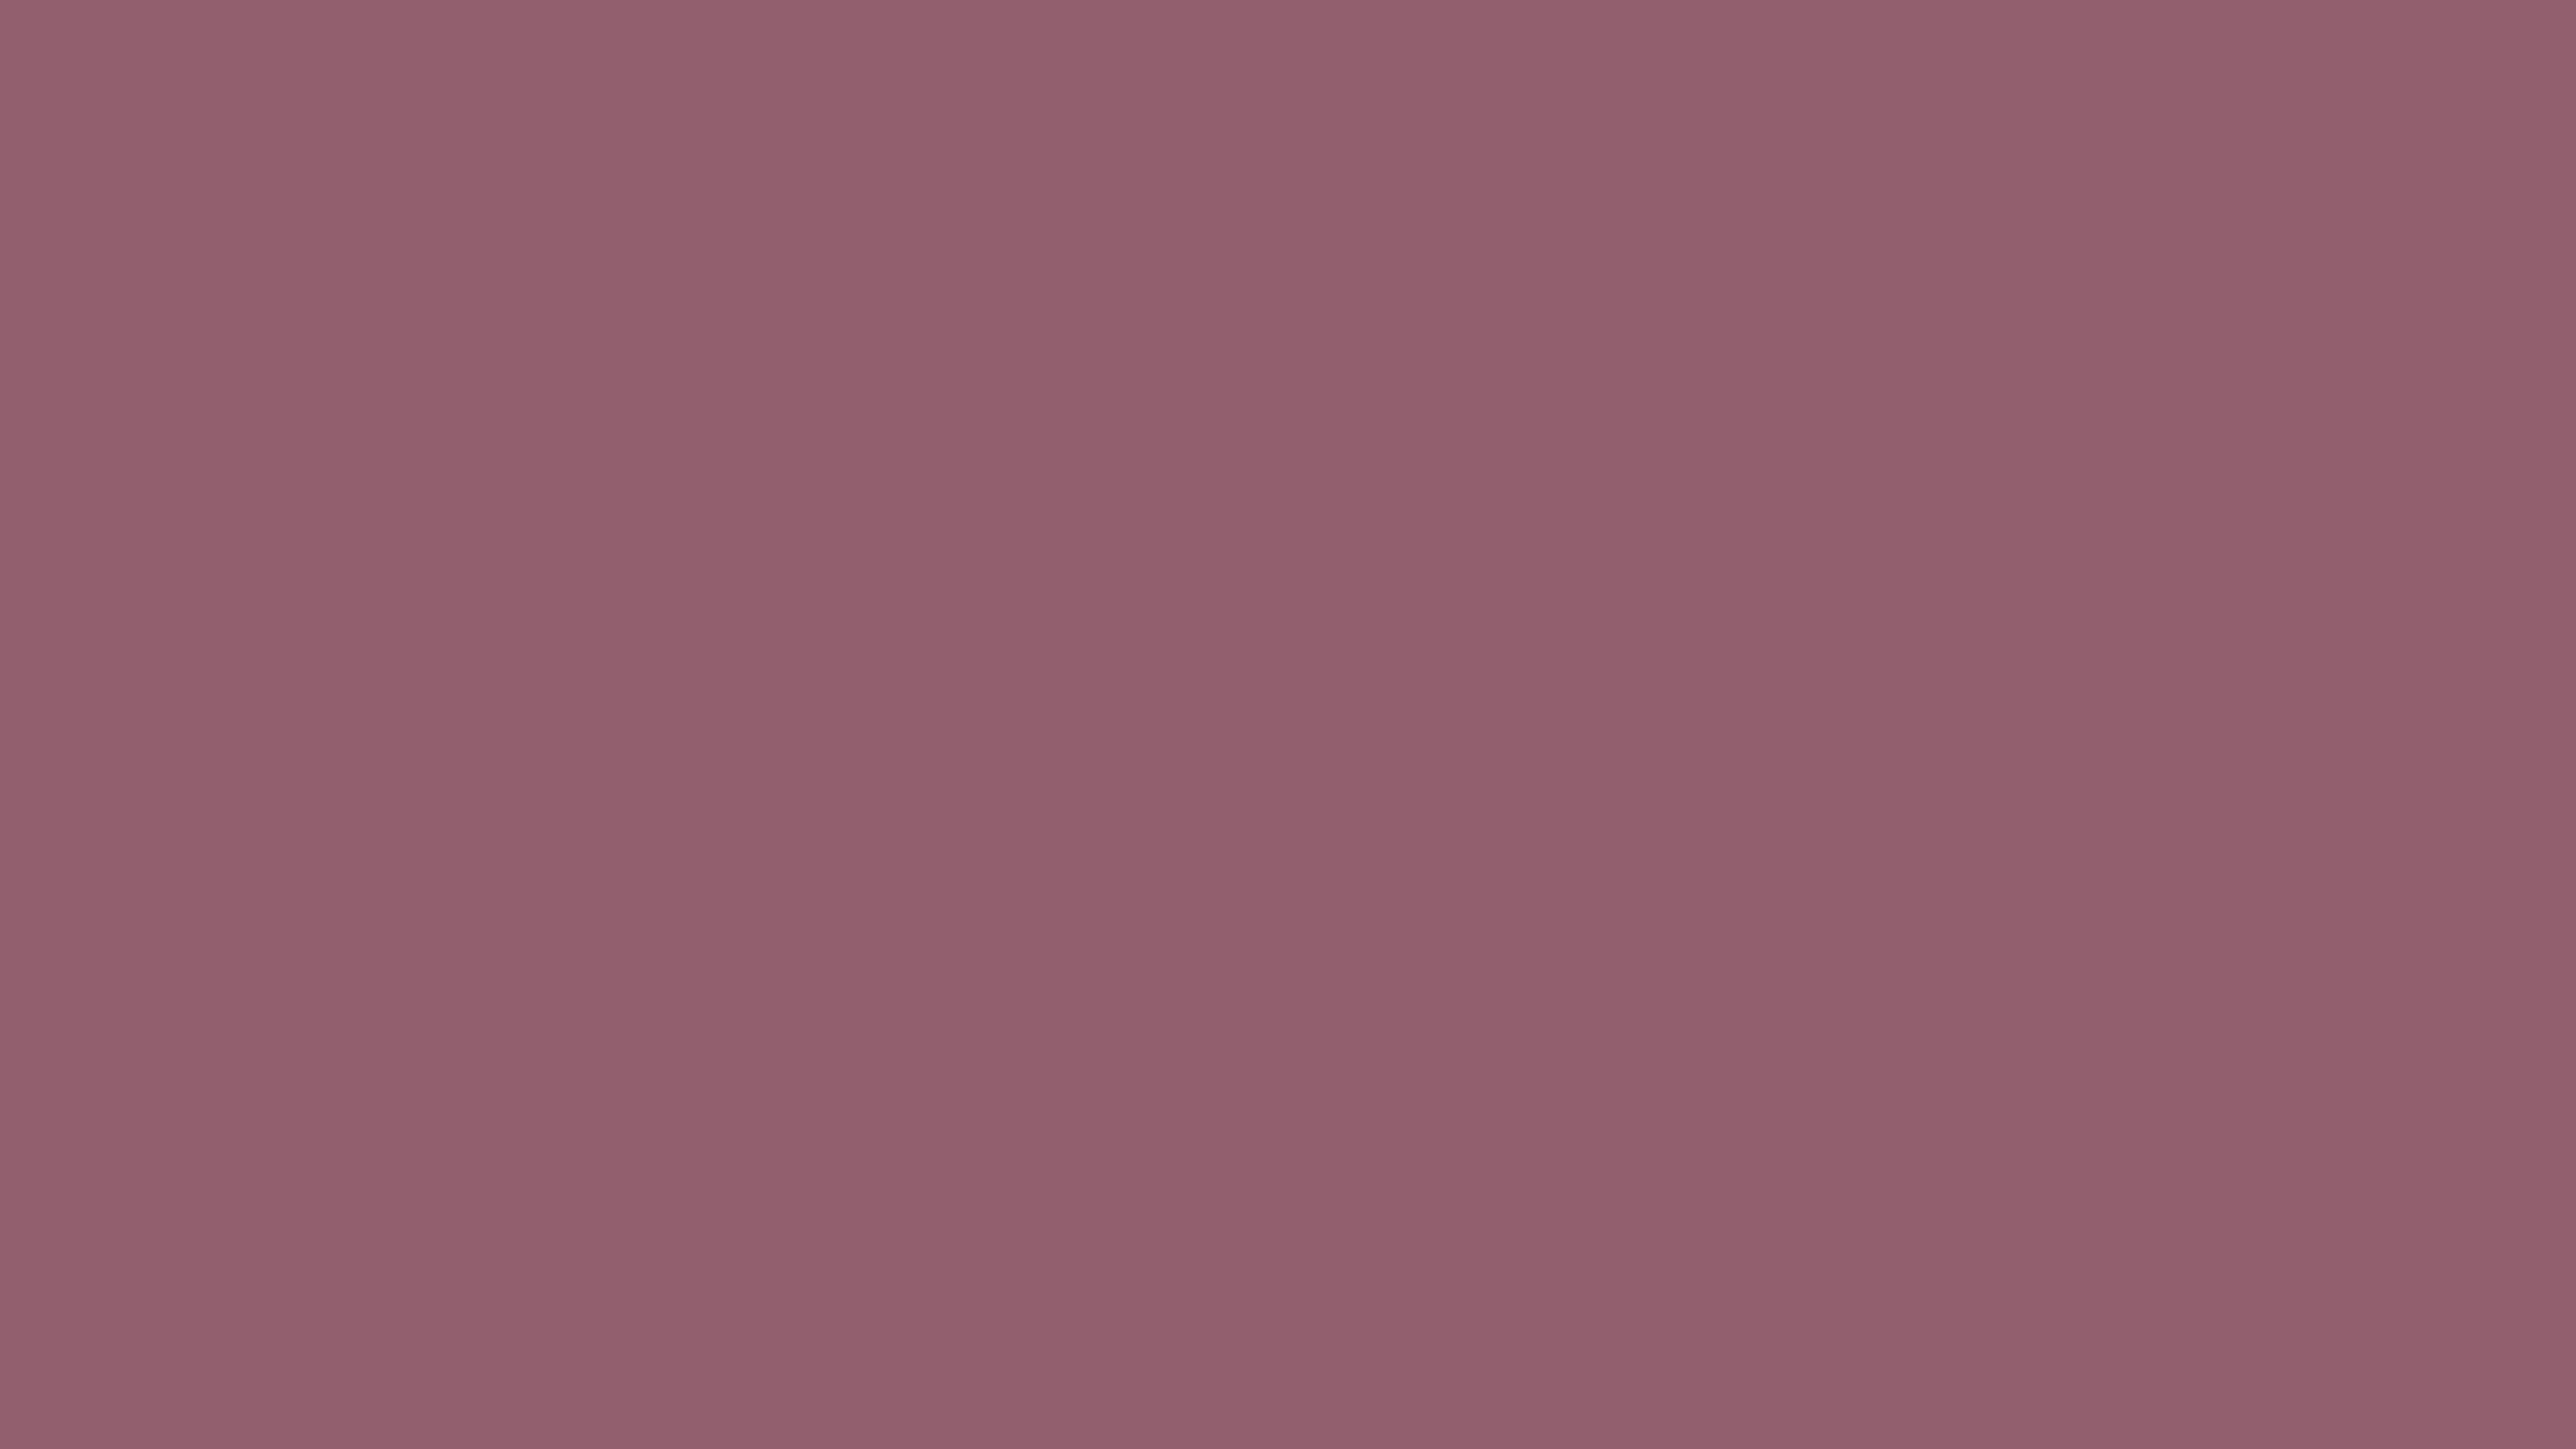 3840x2160 Mauve Taupe Solid Color Background